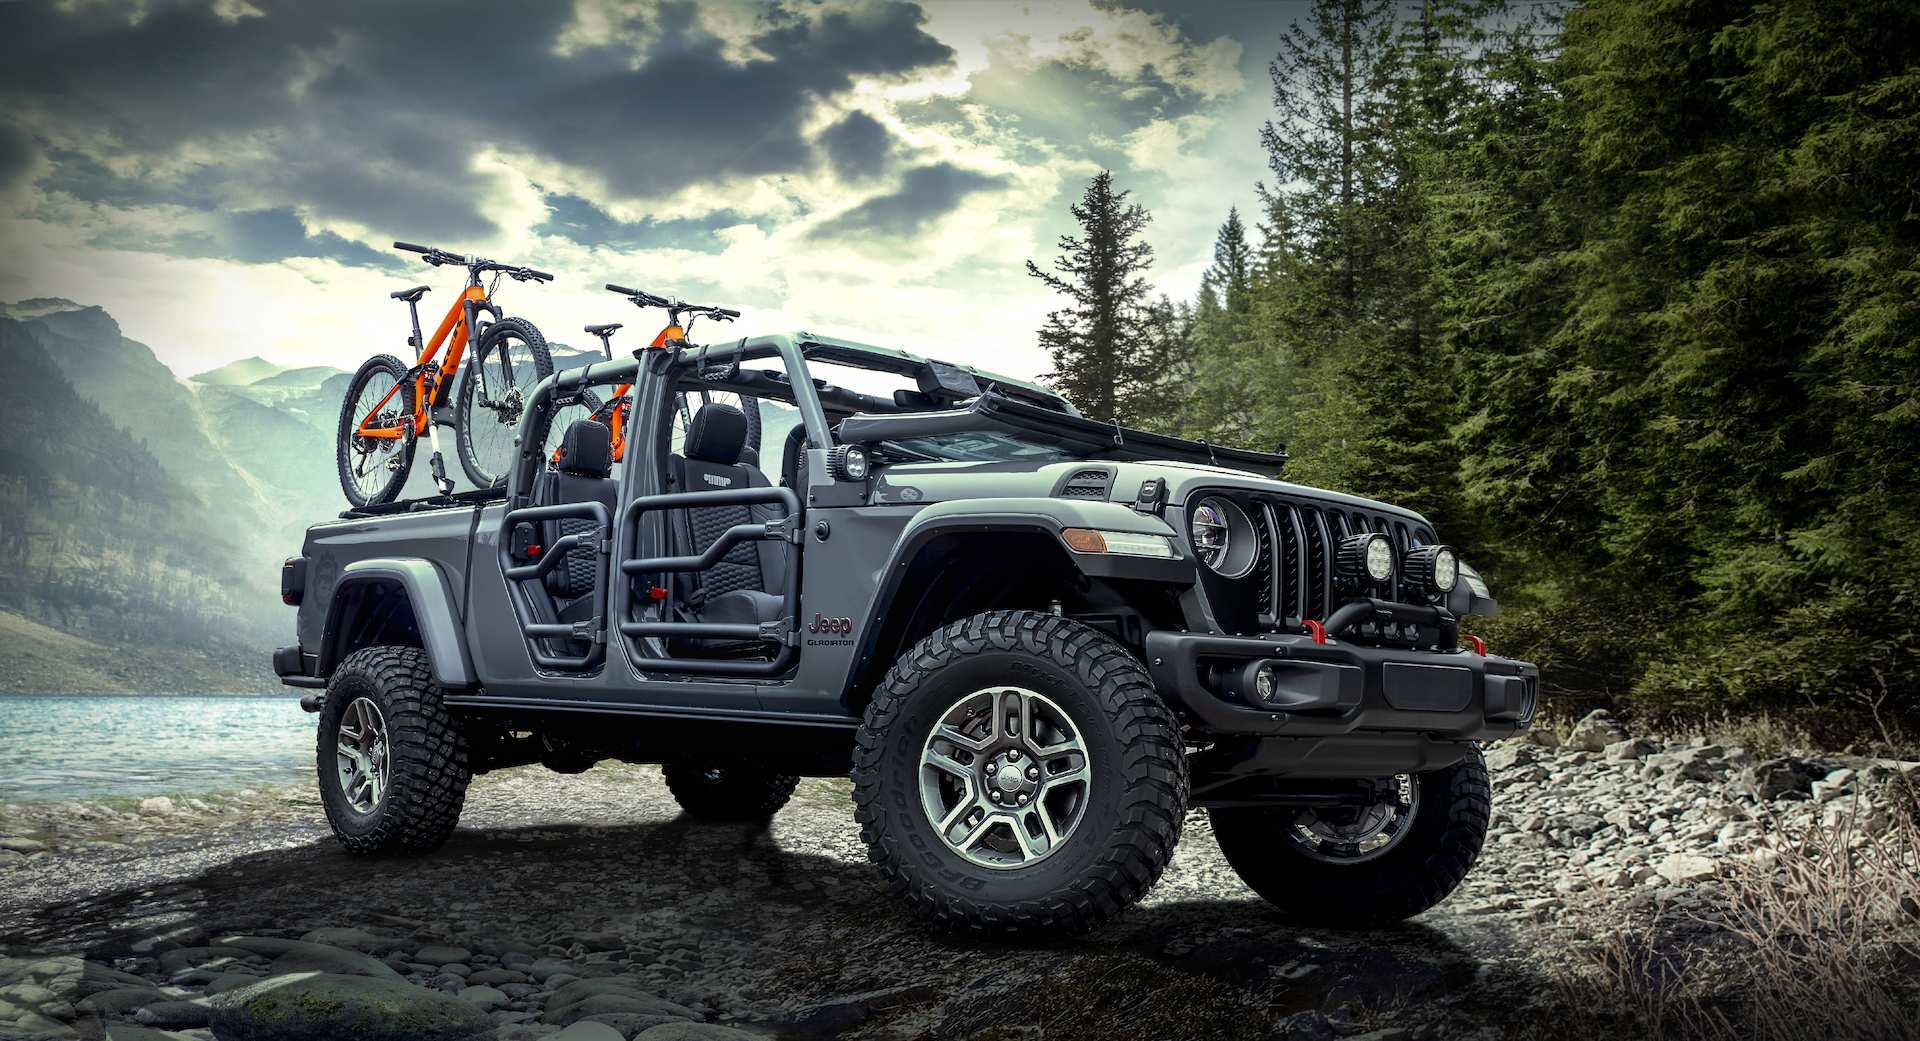 63 All New 2020 Jeep Gladiator Mopar Lift Kit Price and Review for 2020 Jeep Gladiator Mopar Lift Kit